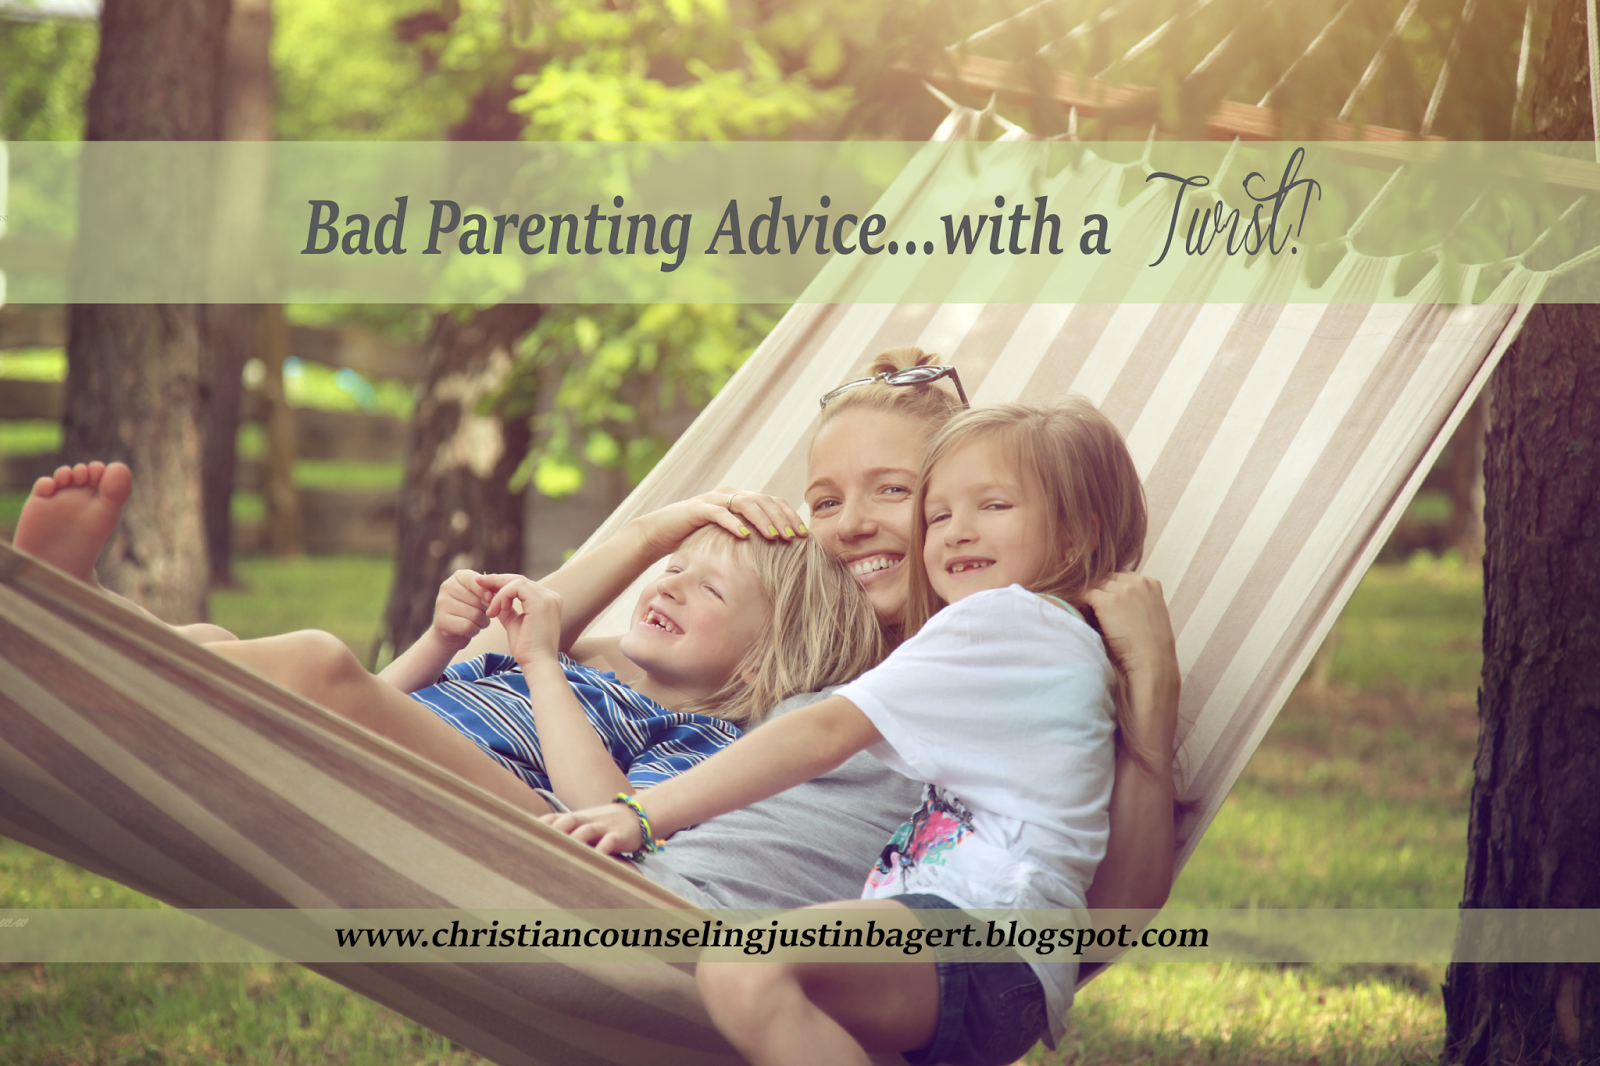 Bad Parenting Advice...with a Twist!! www